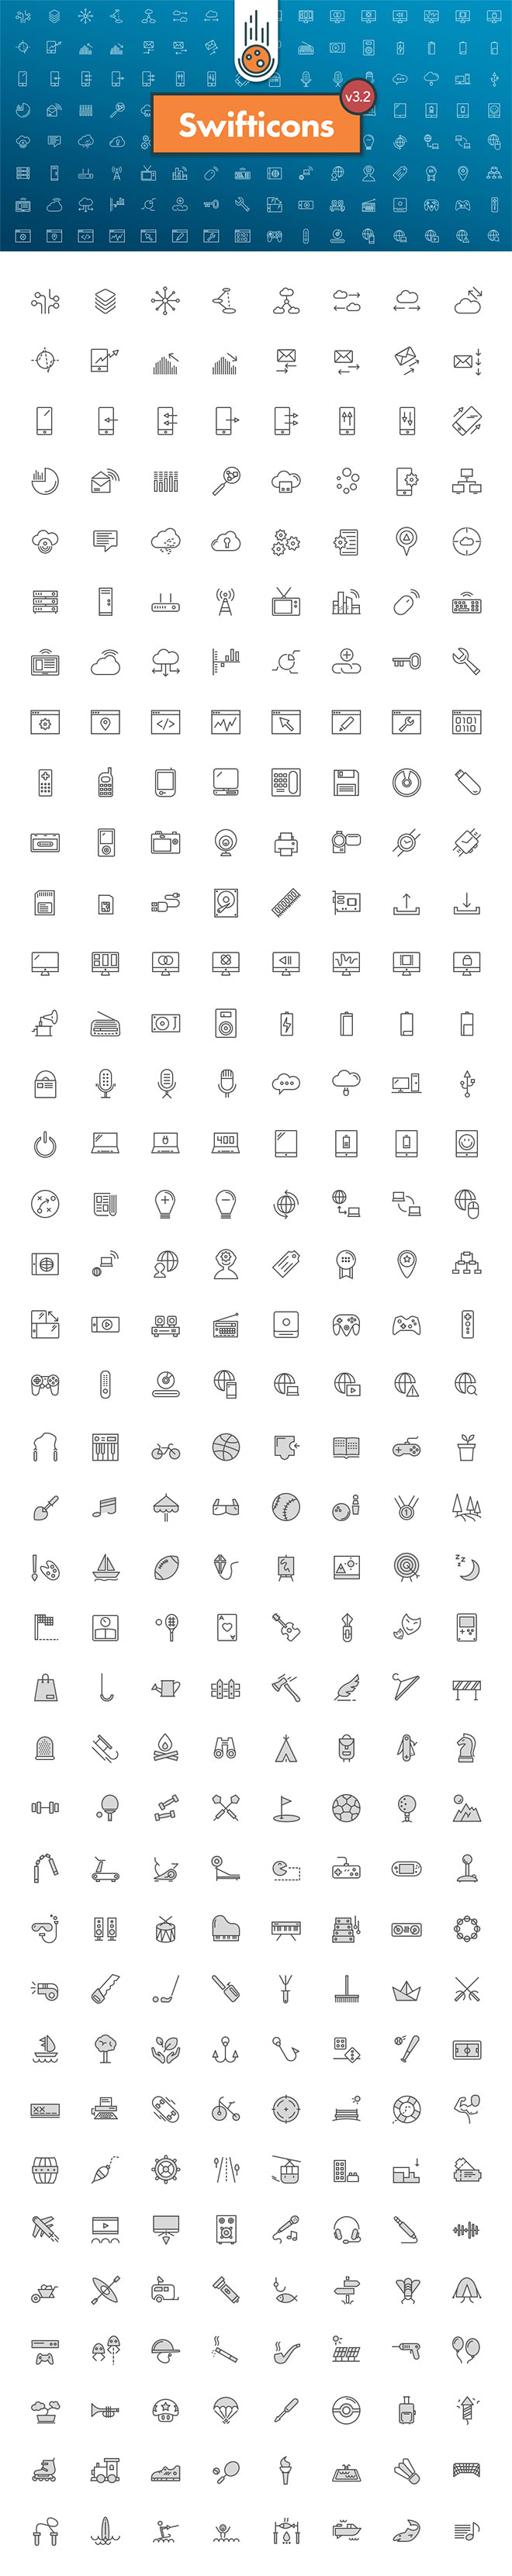 Swifticons free icons